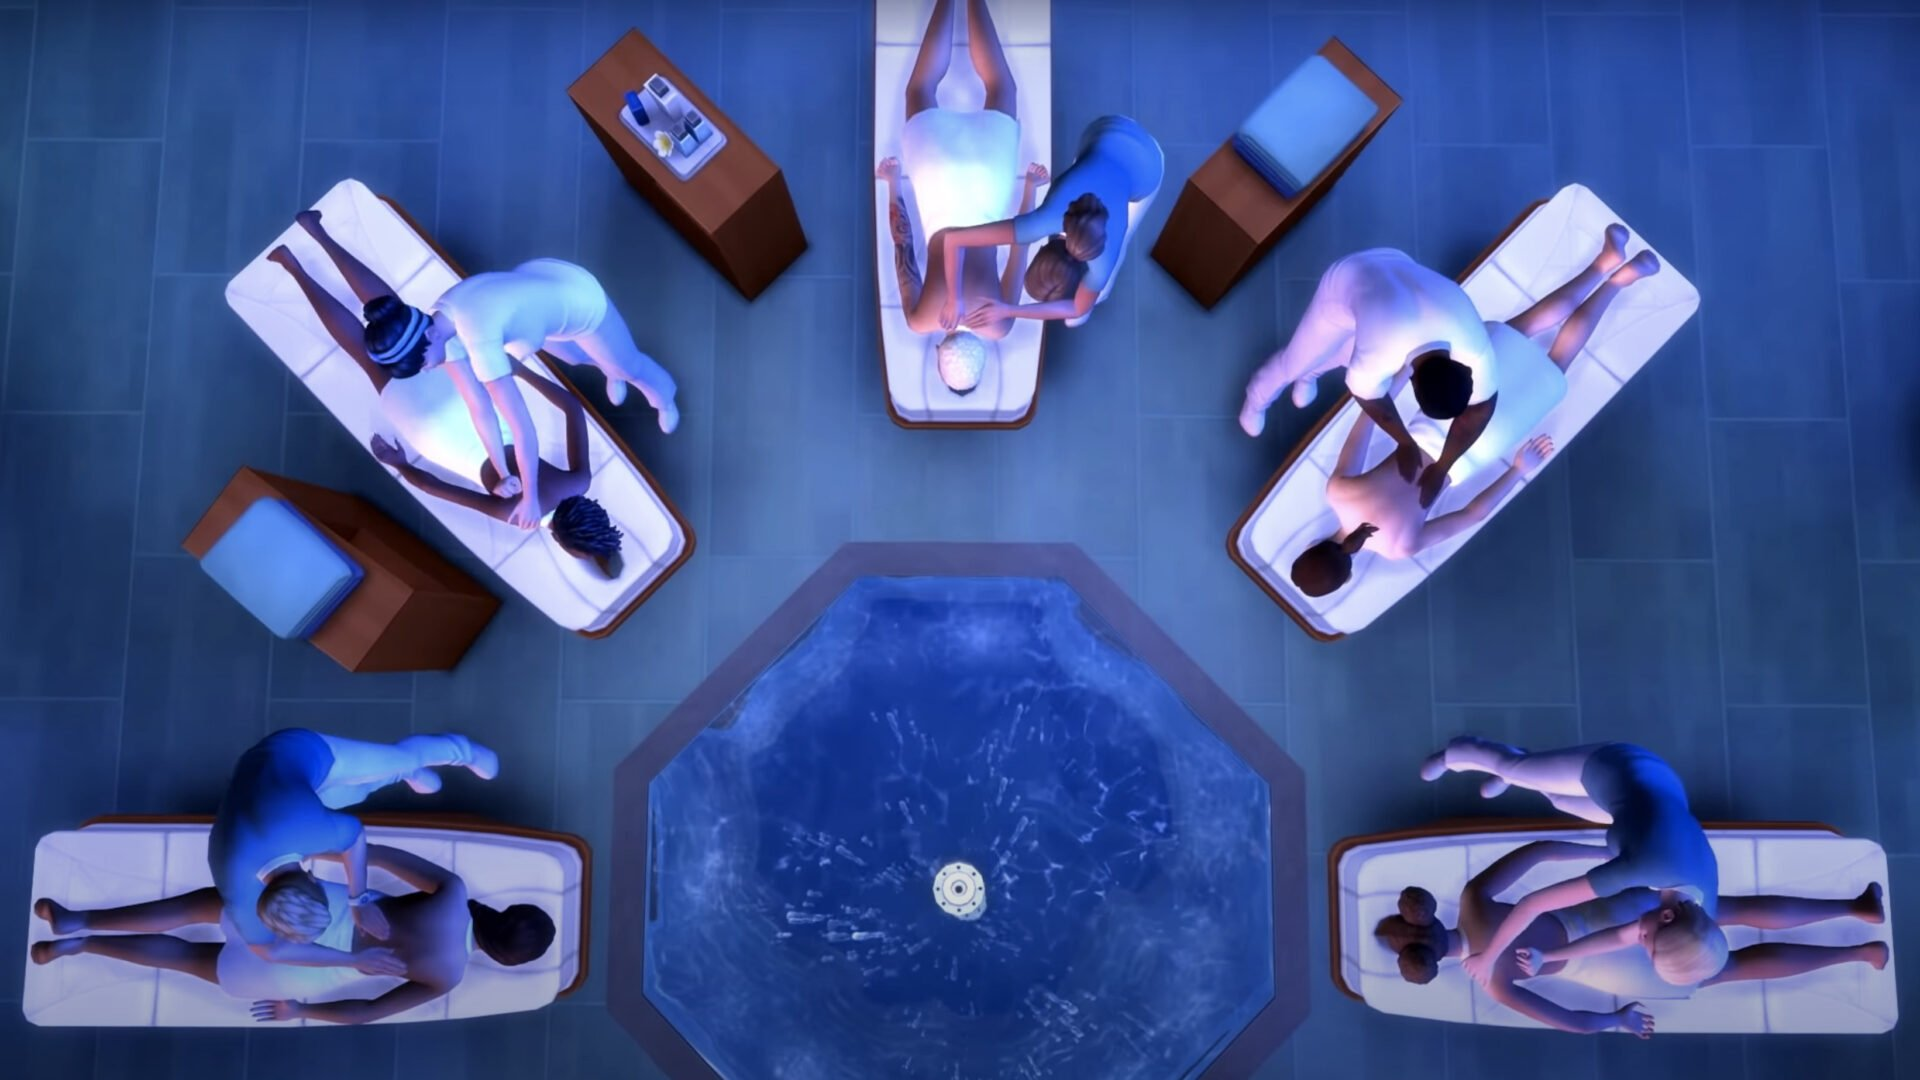 The Sims 4 DLC showing Sims getting a massage